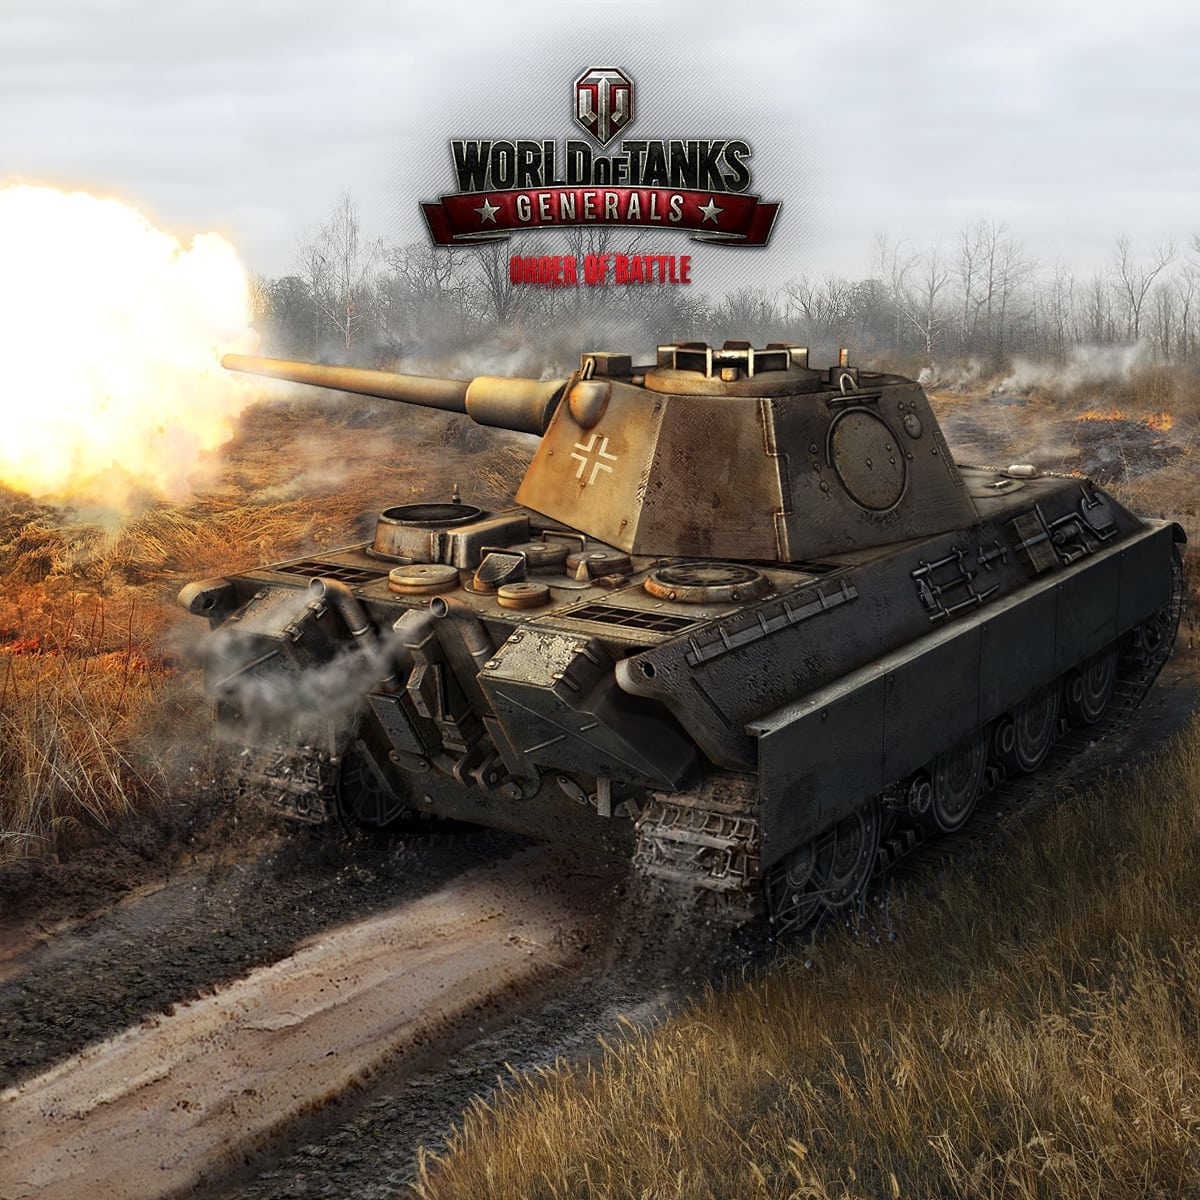 World of Tanks Generals artwork